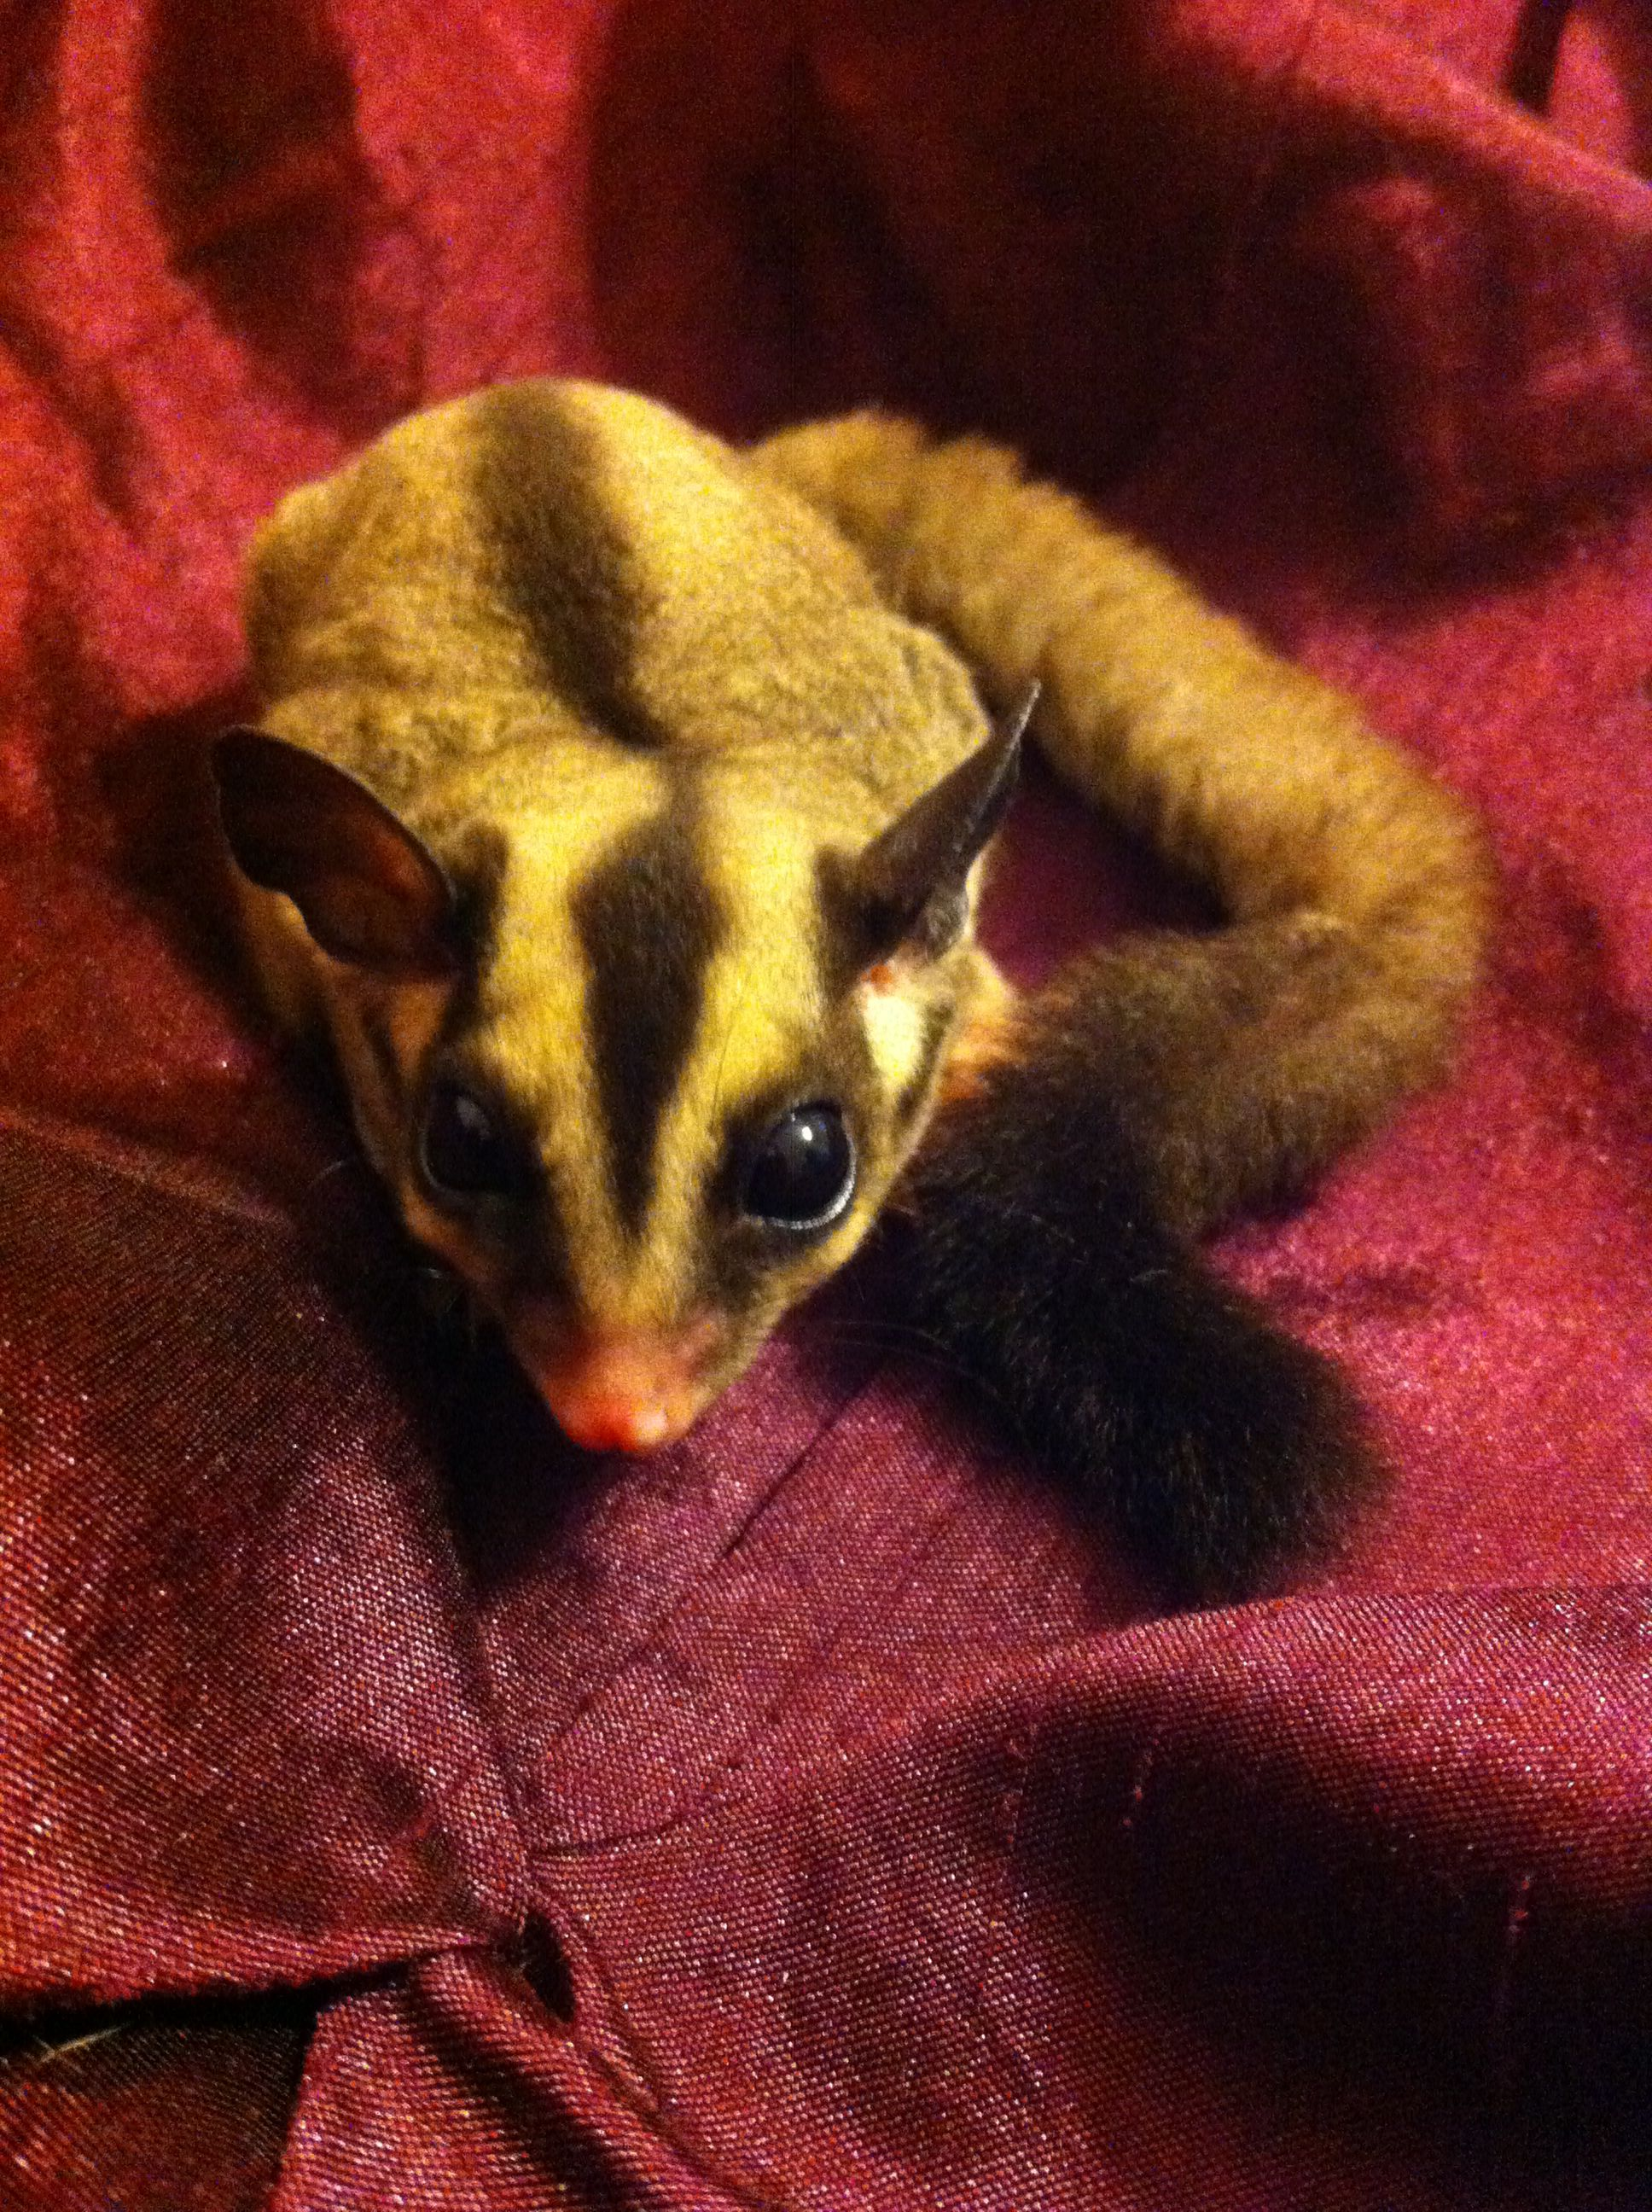 Pin on Sugar Gliders and Guinea Pigs